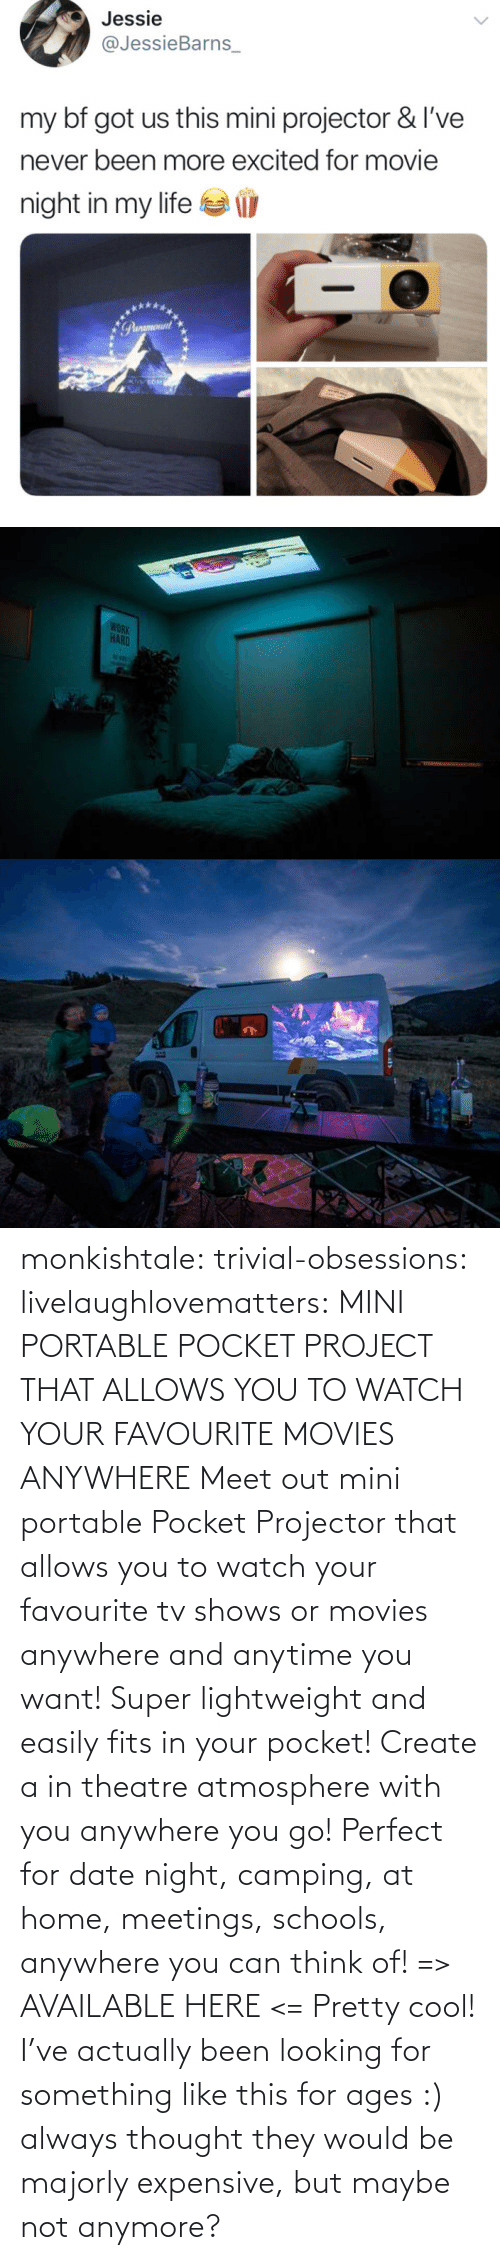 Would Be: monkishtale: trivial-obsessions:   livelaughlovematters:   MINI PORTABLE POCKET PROJECT THAT ALLOWS YOU TO WATCH YOUR FAVOURITE MOVIES ANYWHERE Meet out mini portable Pocket Projector that allows you to watch your favourite tv shows or movies anywhere and anytime you want! Super lightweight and easily fits in your pocket! Create a in theatre atmosphere with you anywhere you go! Perfect for date night, camping, at home, meetings, schools, anywhere you can think of! => AVAILABLE HERE <=    Pretty cool!    I've actually been looking for something like this for ages :) always thought they would be majorly expensive, but maybe not anymore?